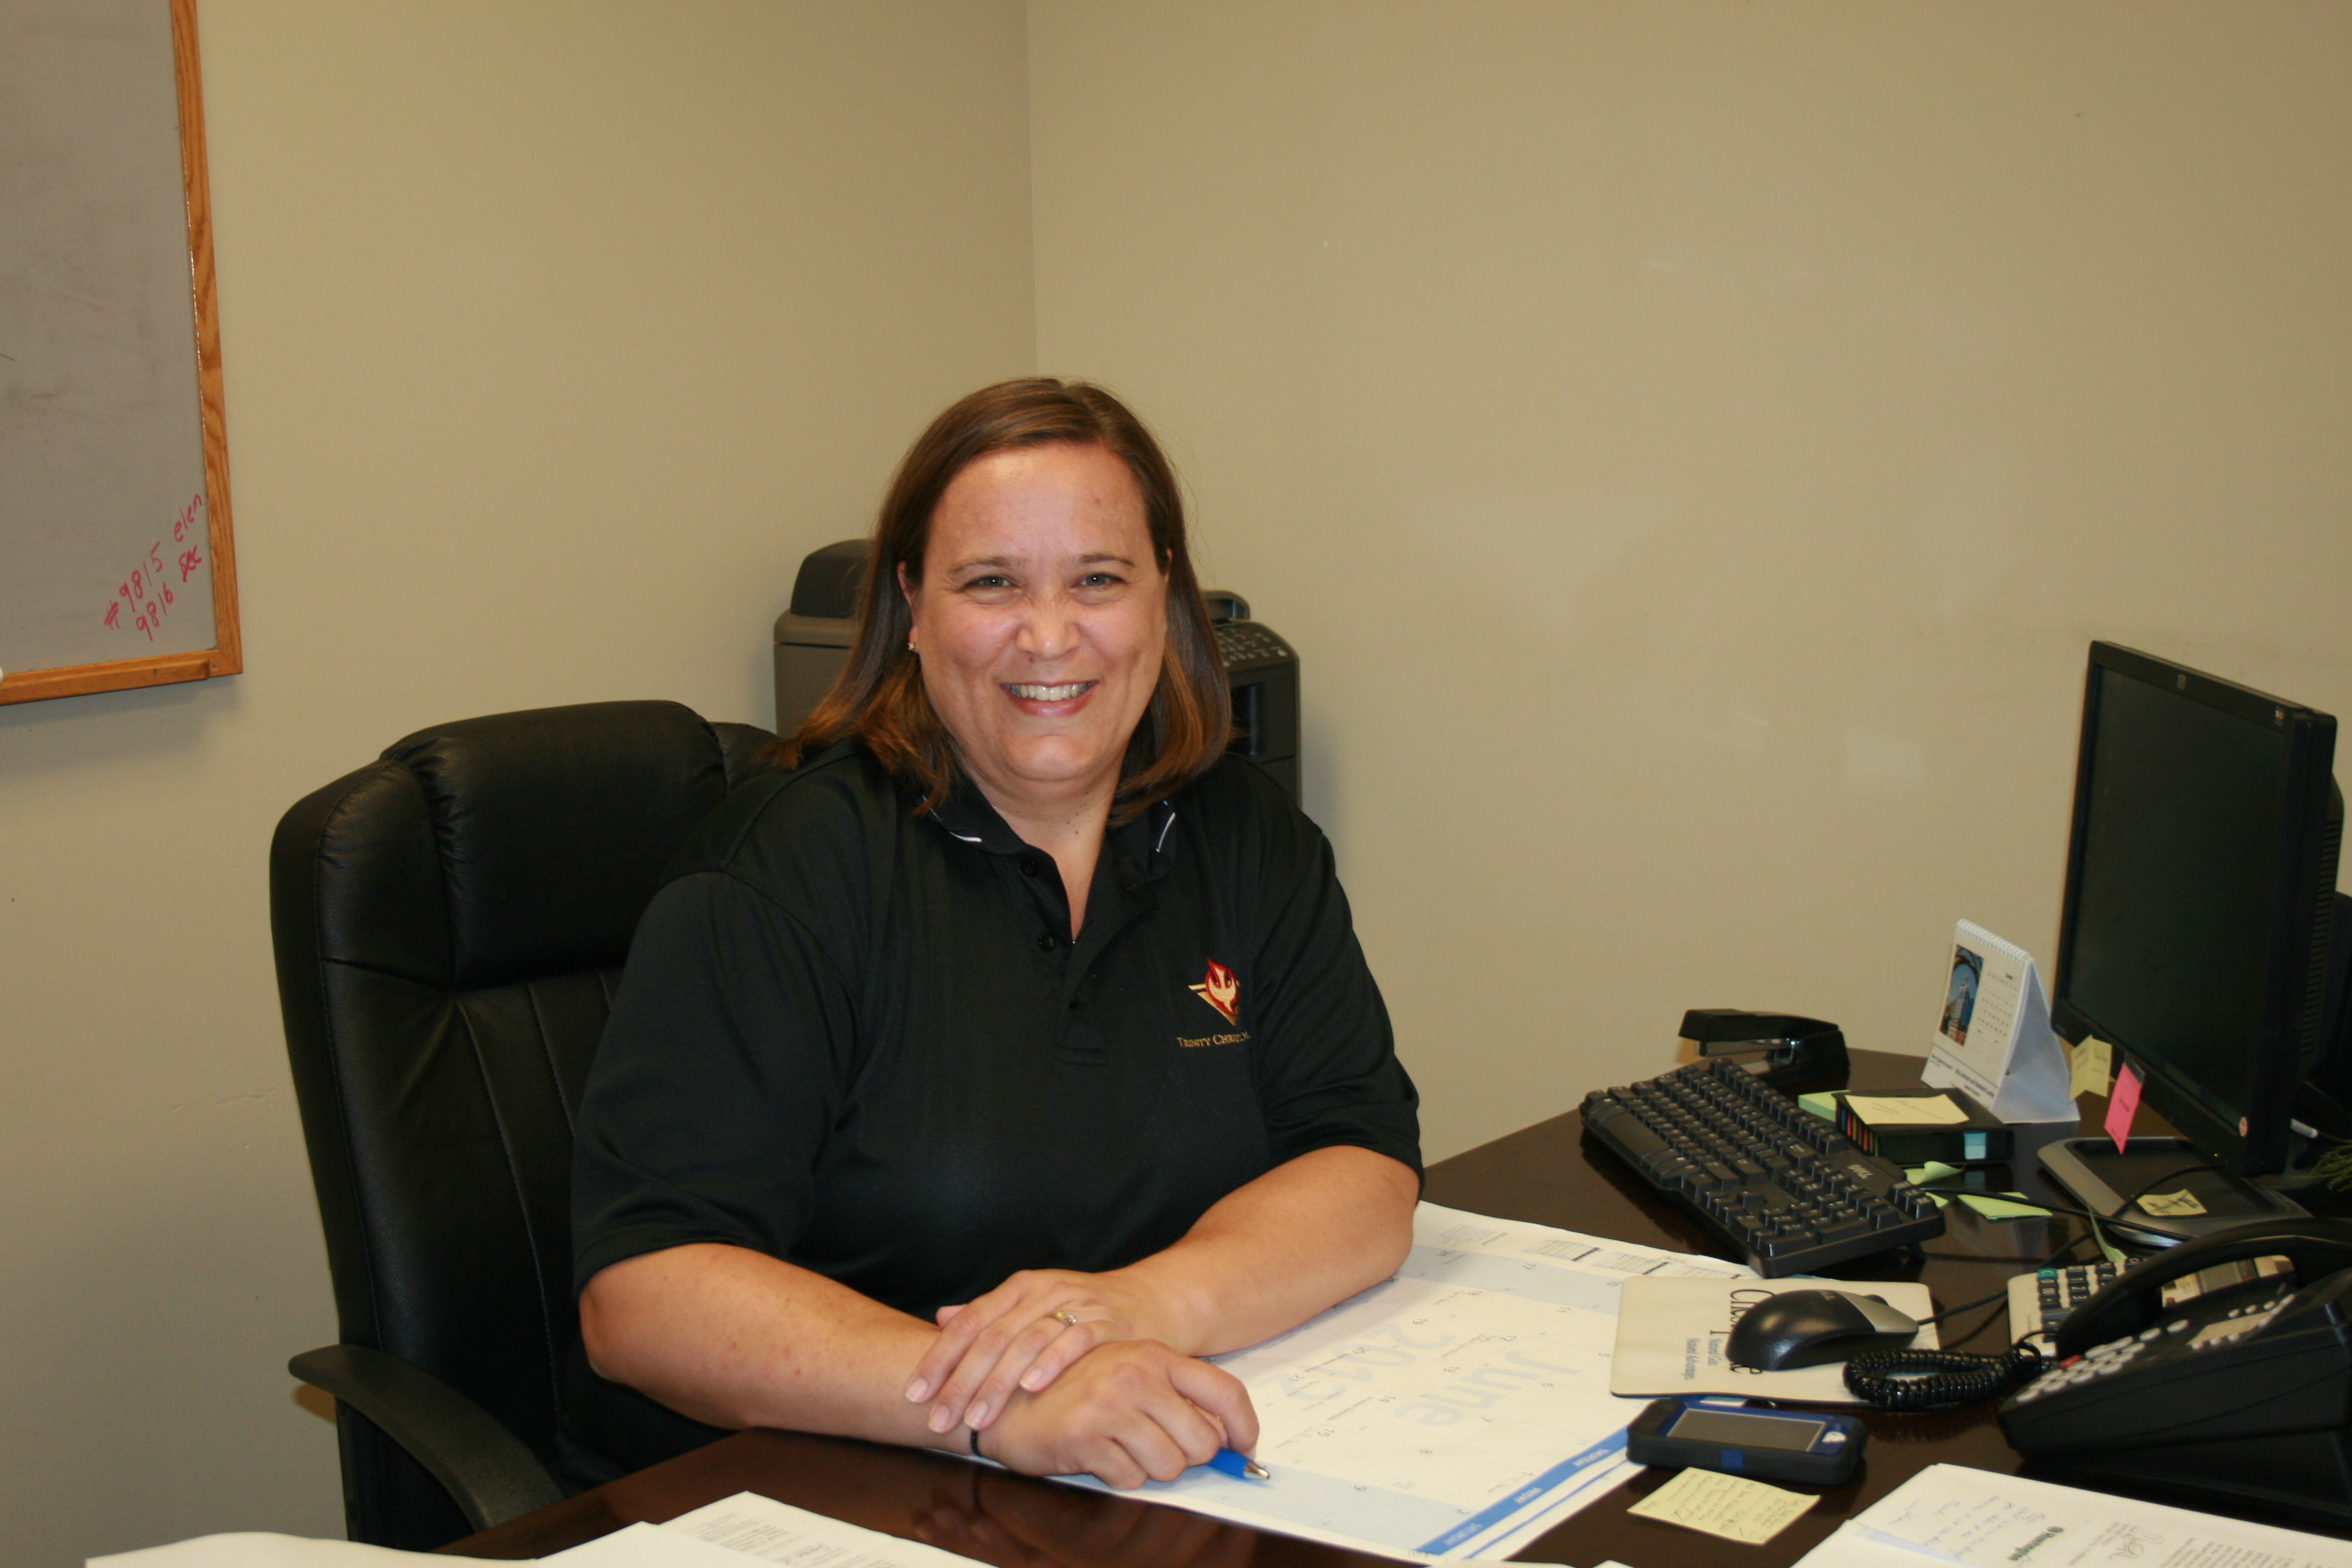 trinity christian school it s been an active summer while a familiar face to returning tcs families mrs woods will no longer be teaching gym classes she now finds herself behind a desk fulfilling her new